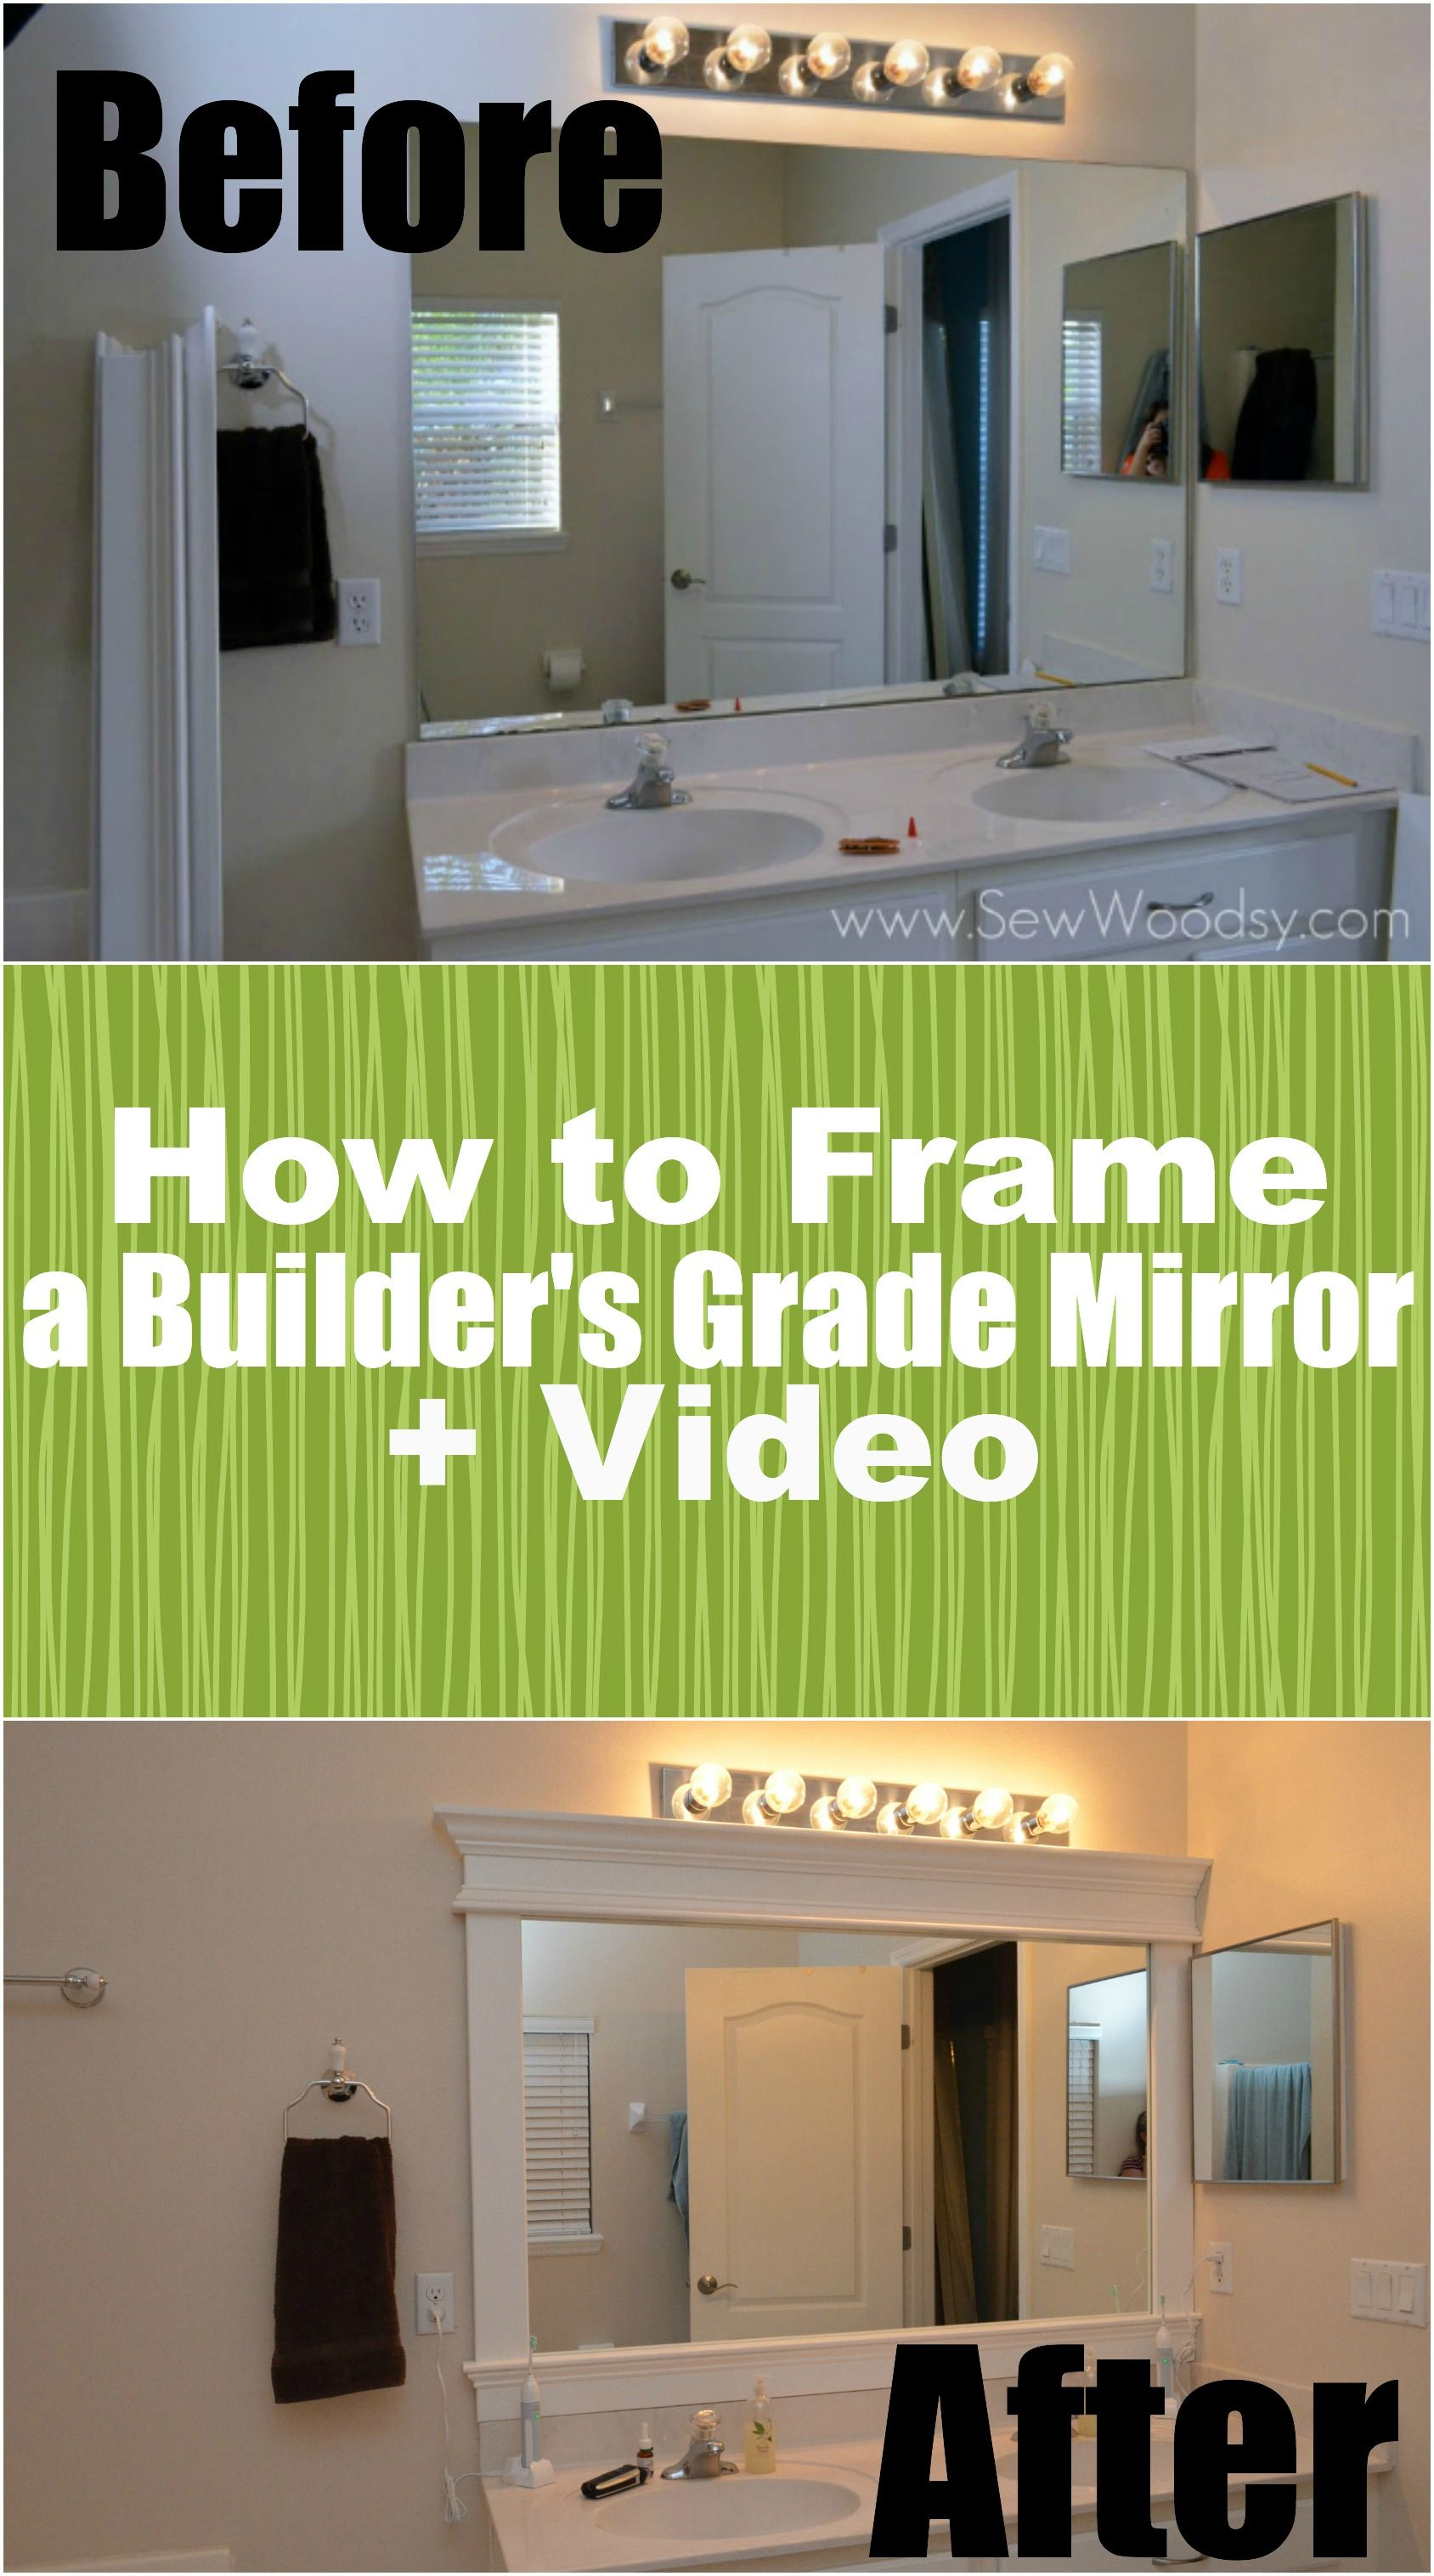 framing builder grade bathroom mirror how to frame a builders grade mirror before and after 23212 | b6623b3cdbee2cc1a742f64eeb0a6637